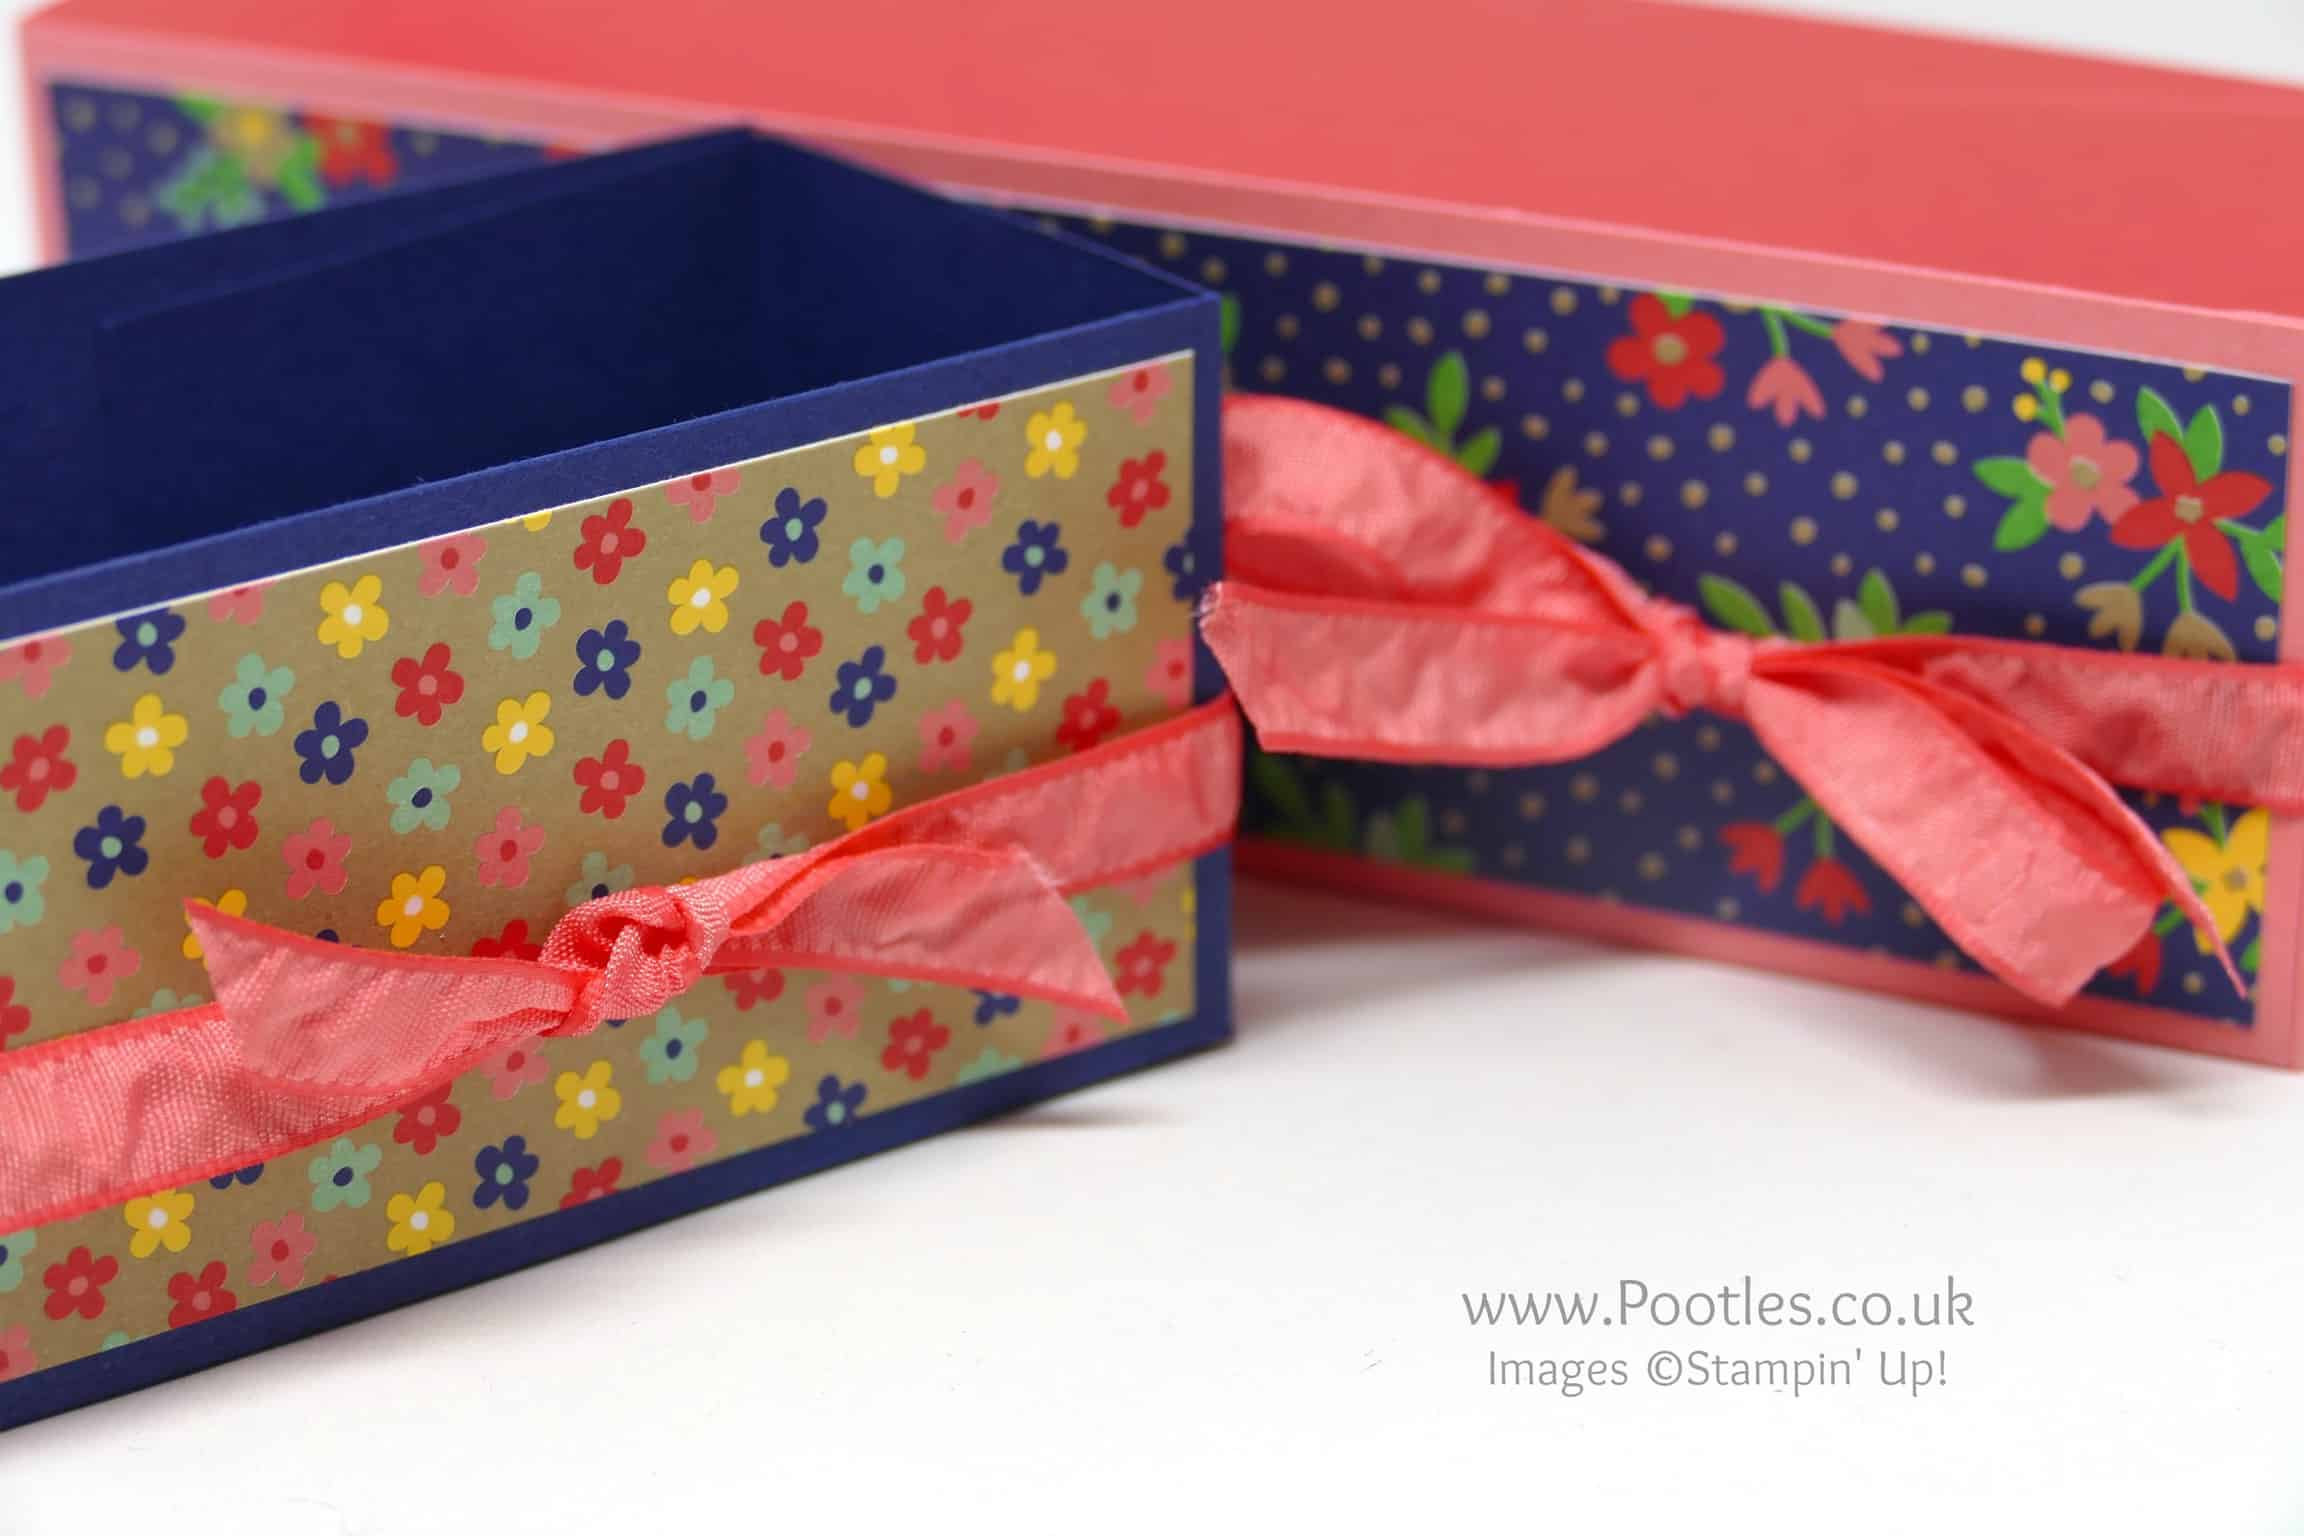 Pootles' Way Back Wednesday Slender Storage Box